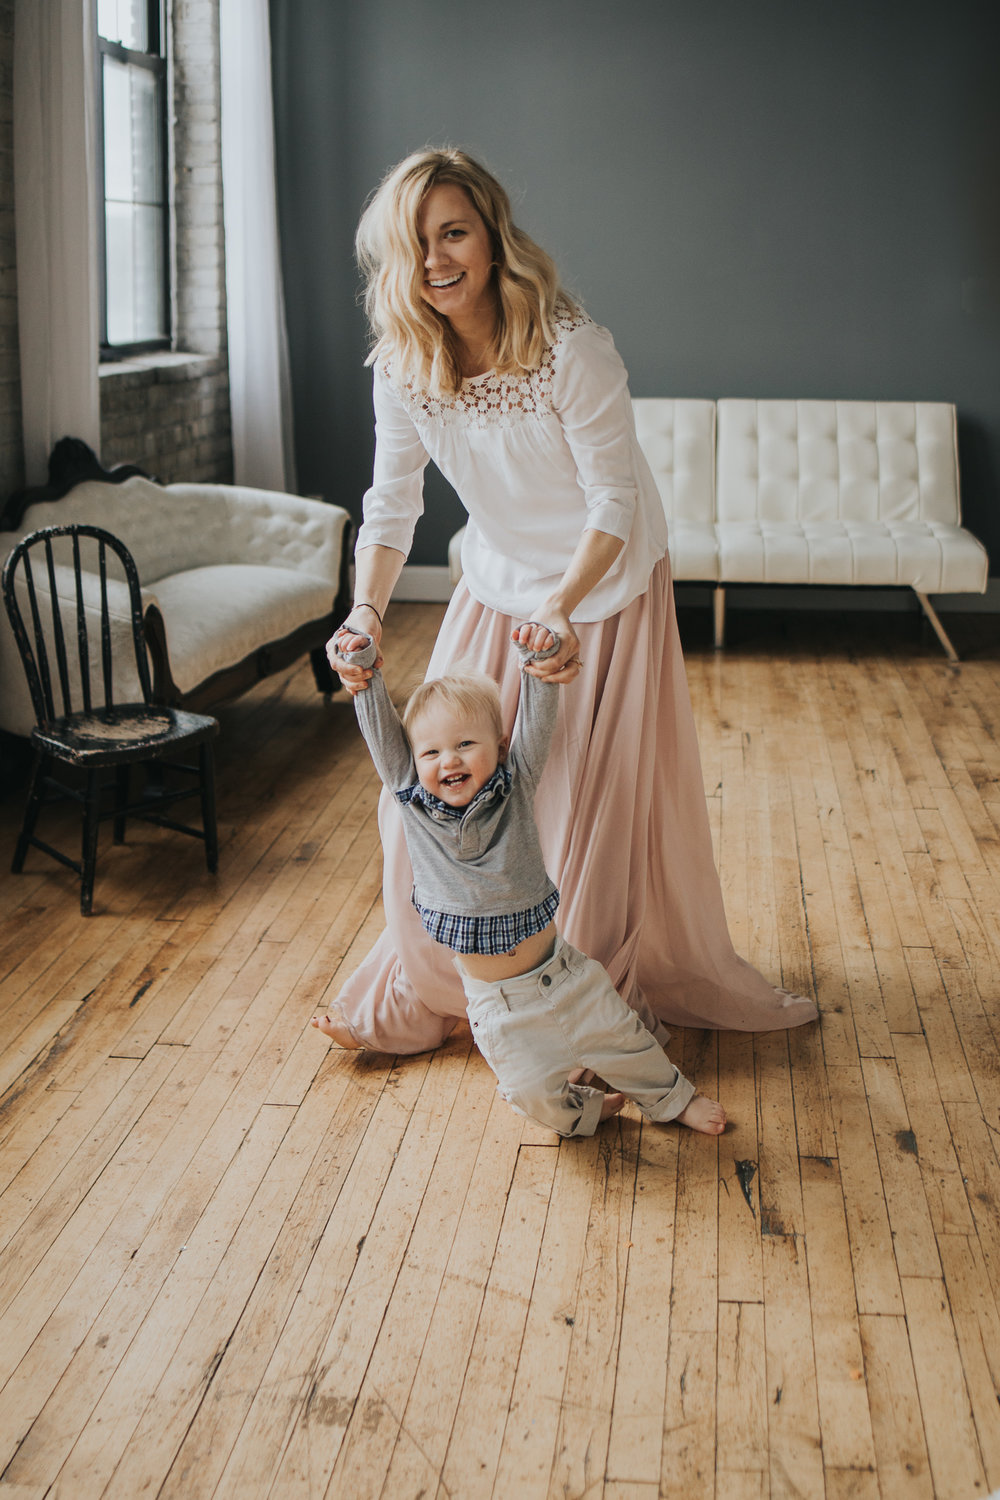 blonde woman in white shirt and pink skirt dancing with baby boy - Twin Cities Family Photographer